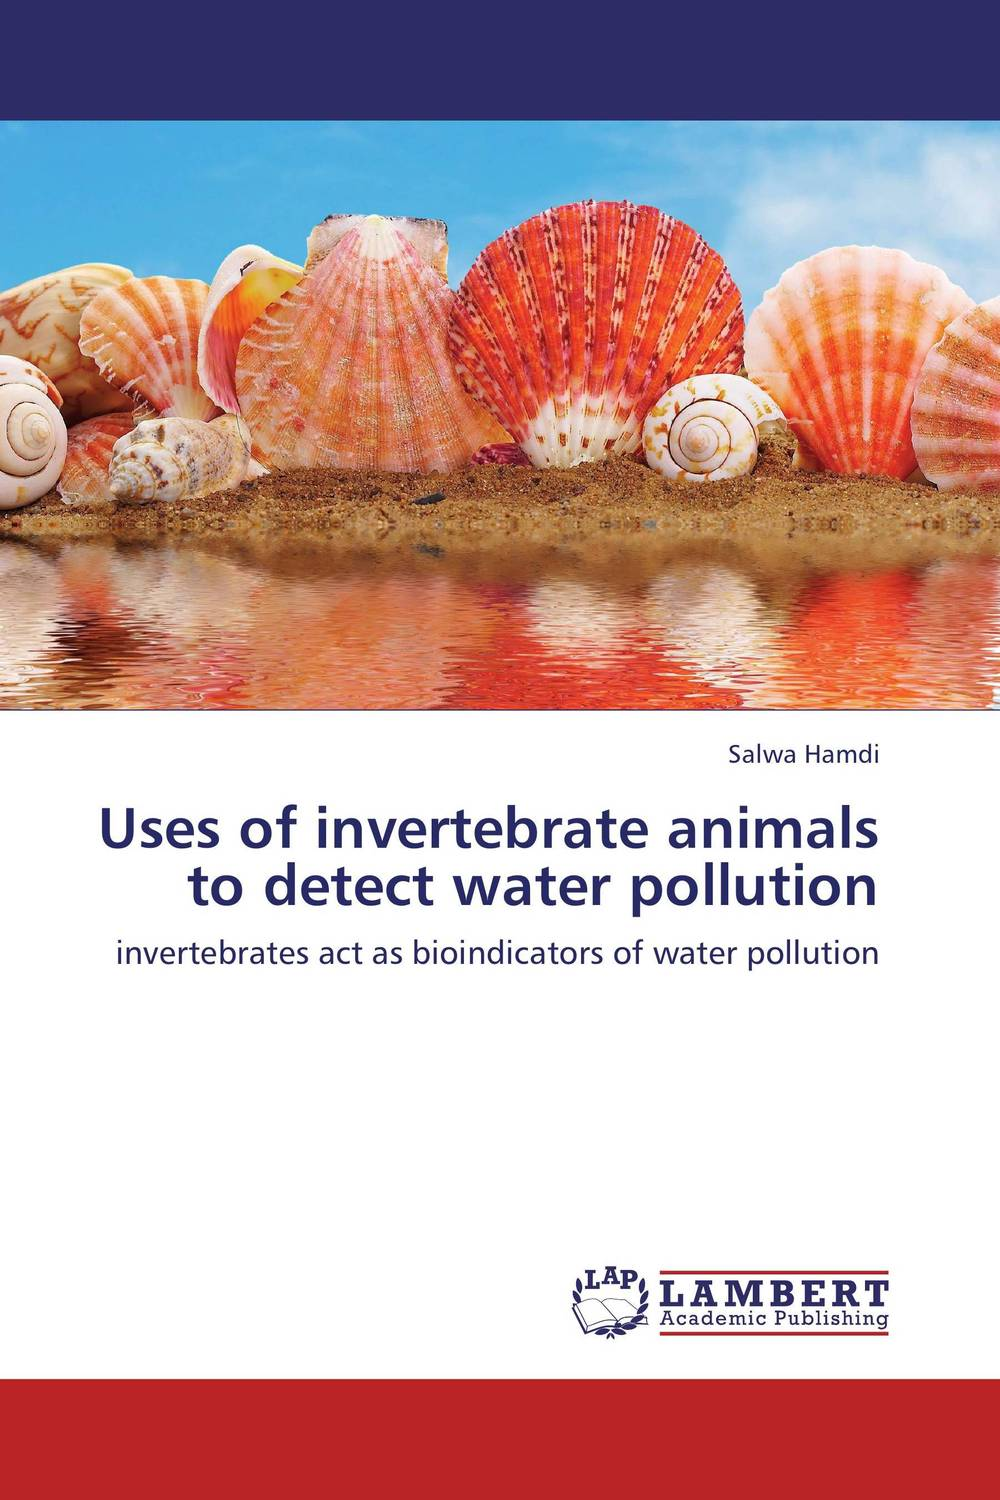 Uses of invertebrate animals to detect water pollution ethnomedicinal uses of animals in india with reference to asthma